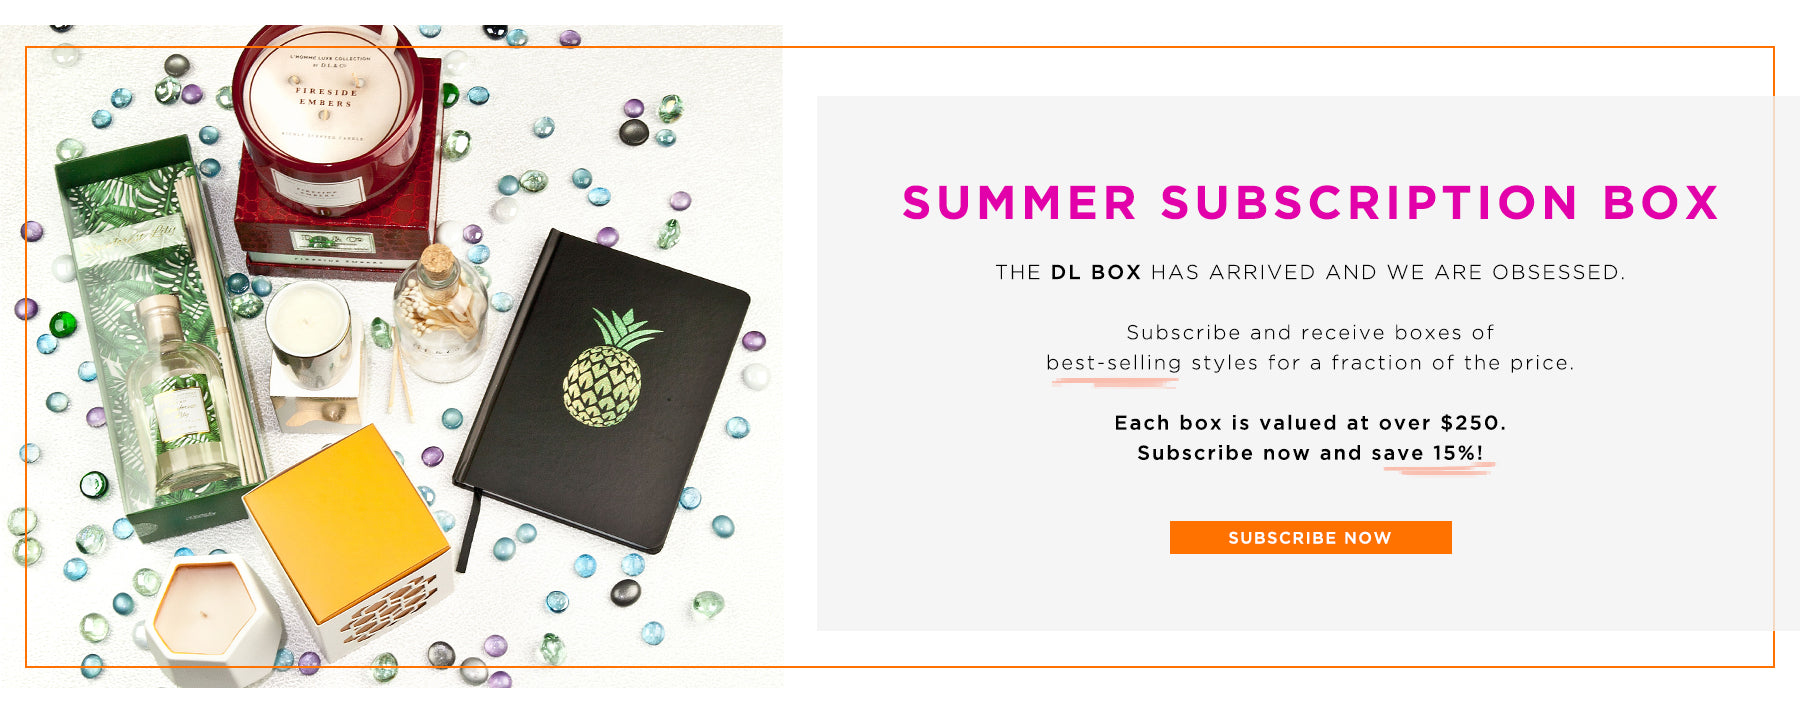 Summer Subscription Box: The DL Box has arrived - Only $99 for over $250 worth of luxe home decor items. Subscribe Now.